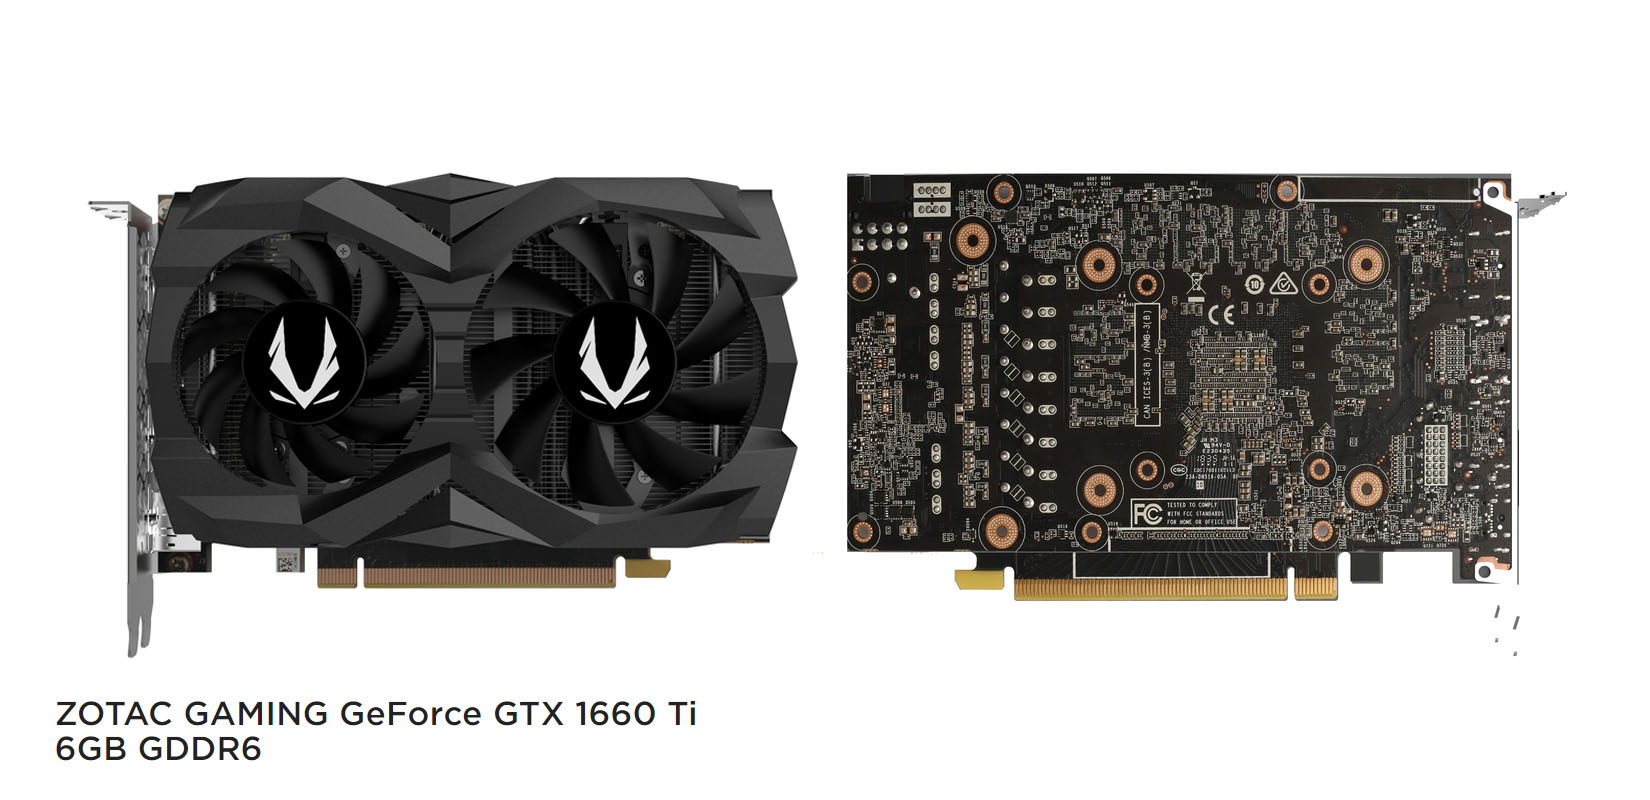 ZOTAC Outs GAMING GeForce GTX 1660 Ti Graphics Cards